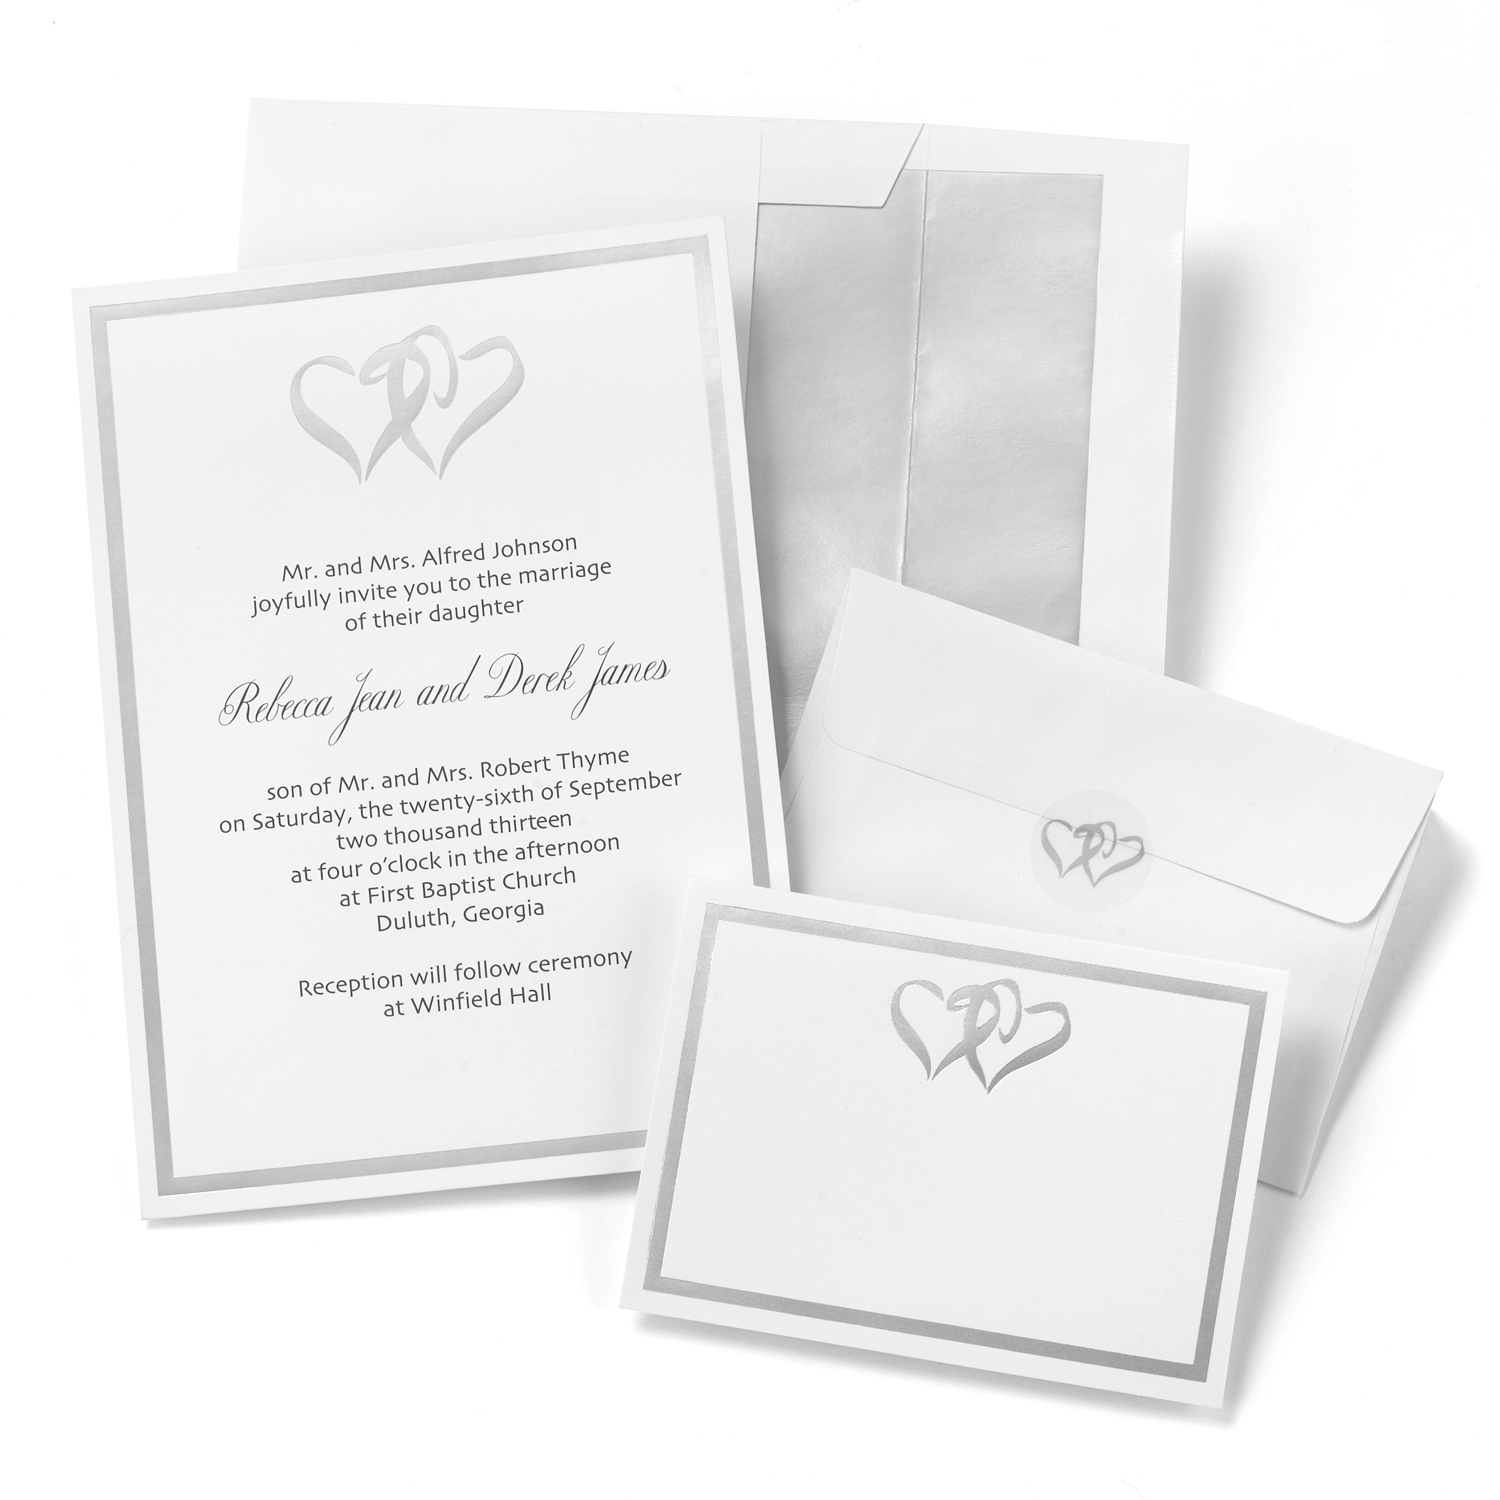 White invitations with silver foil border and linked heart design ...